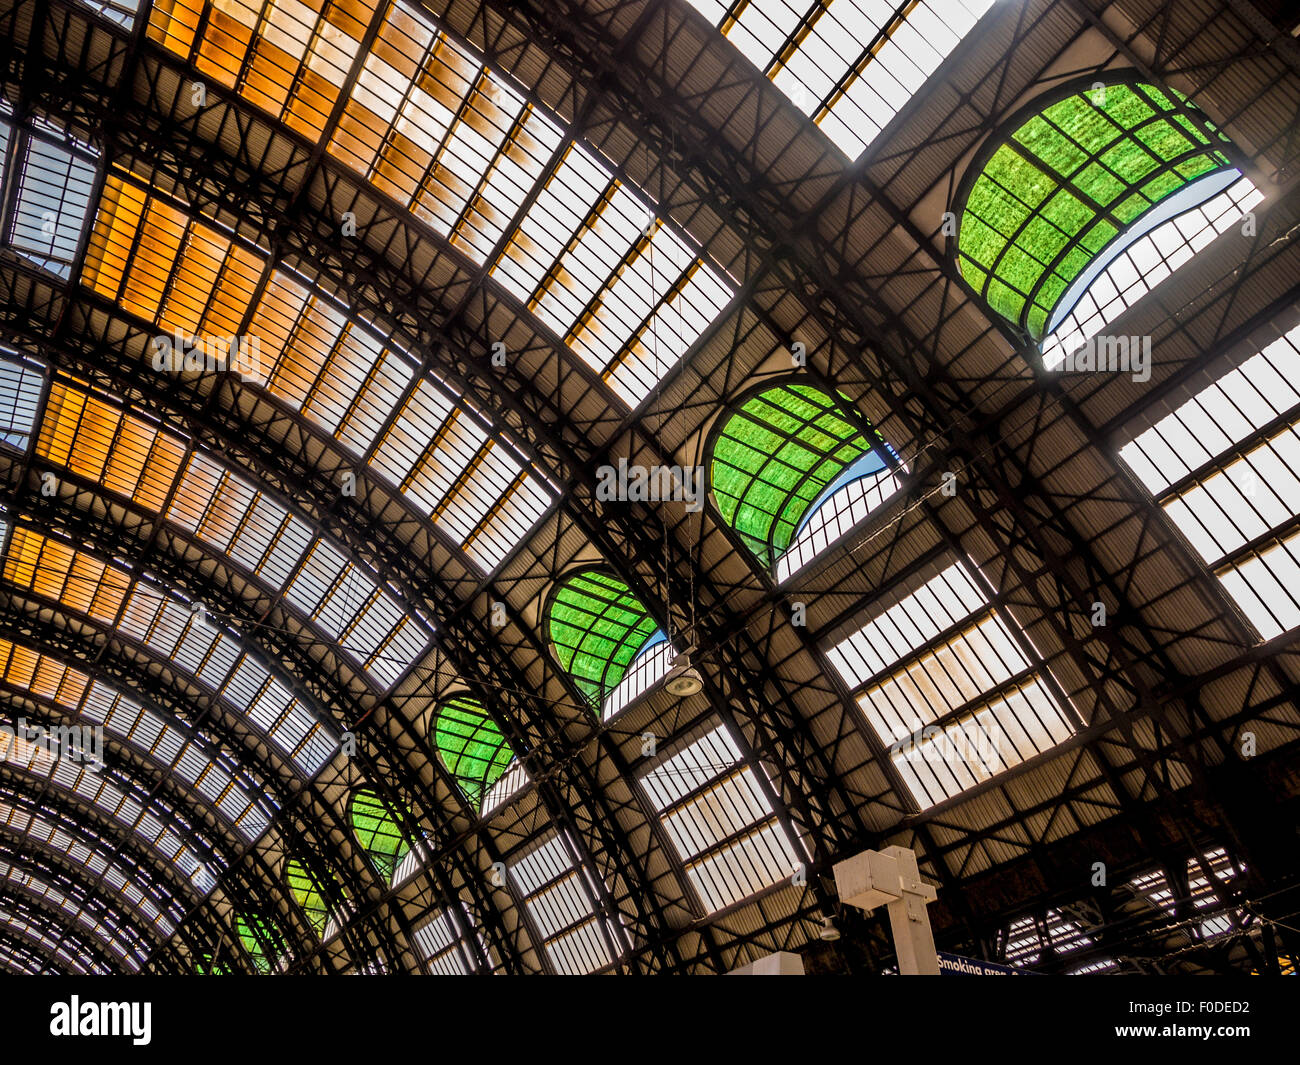 Milano Centrale. Milan Central Station, Italy. - Stock Image